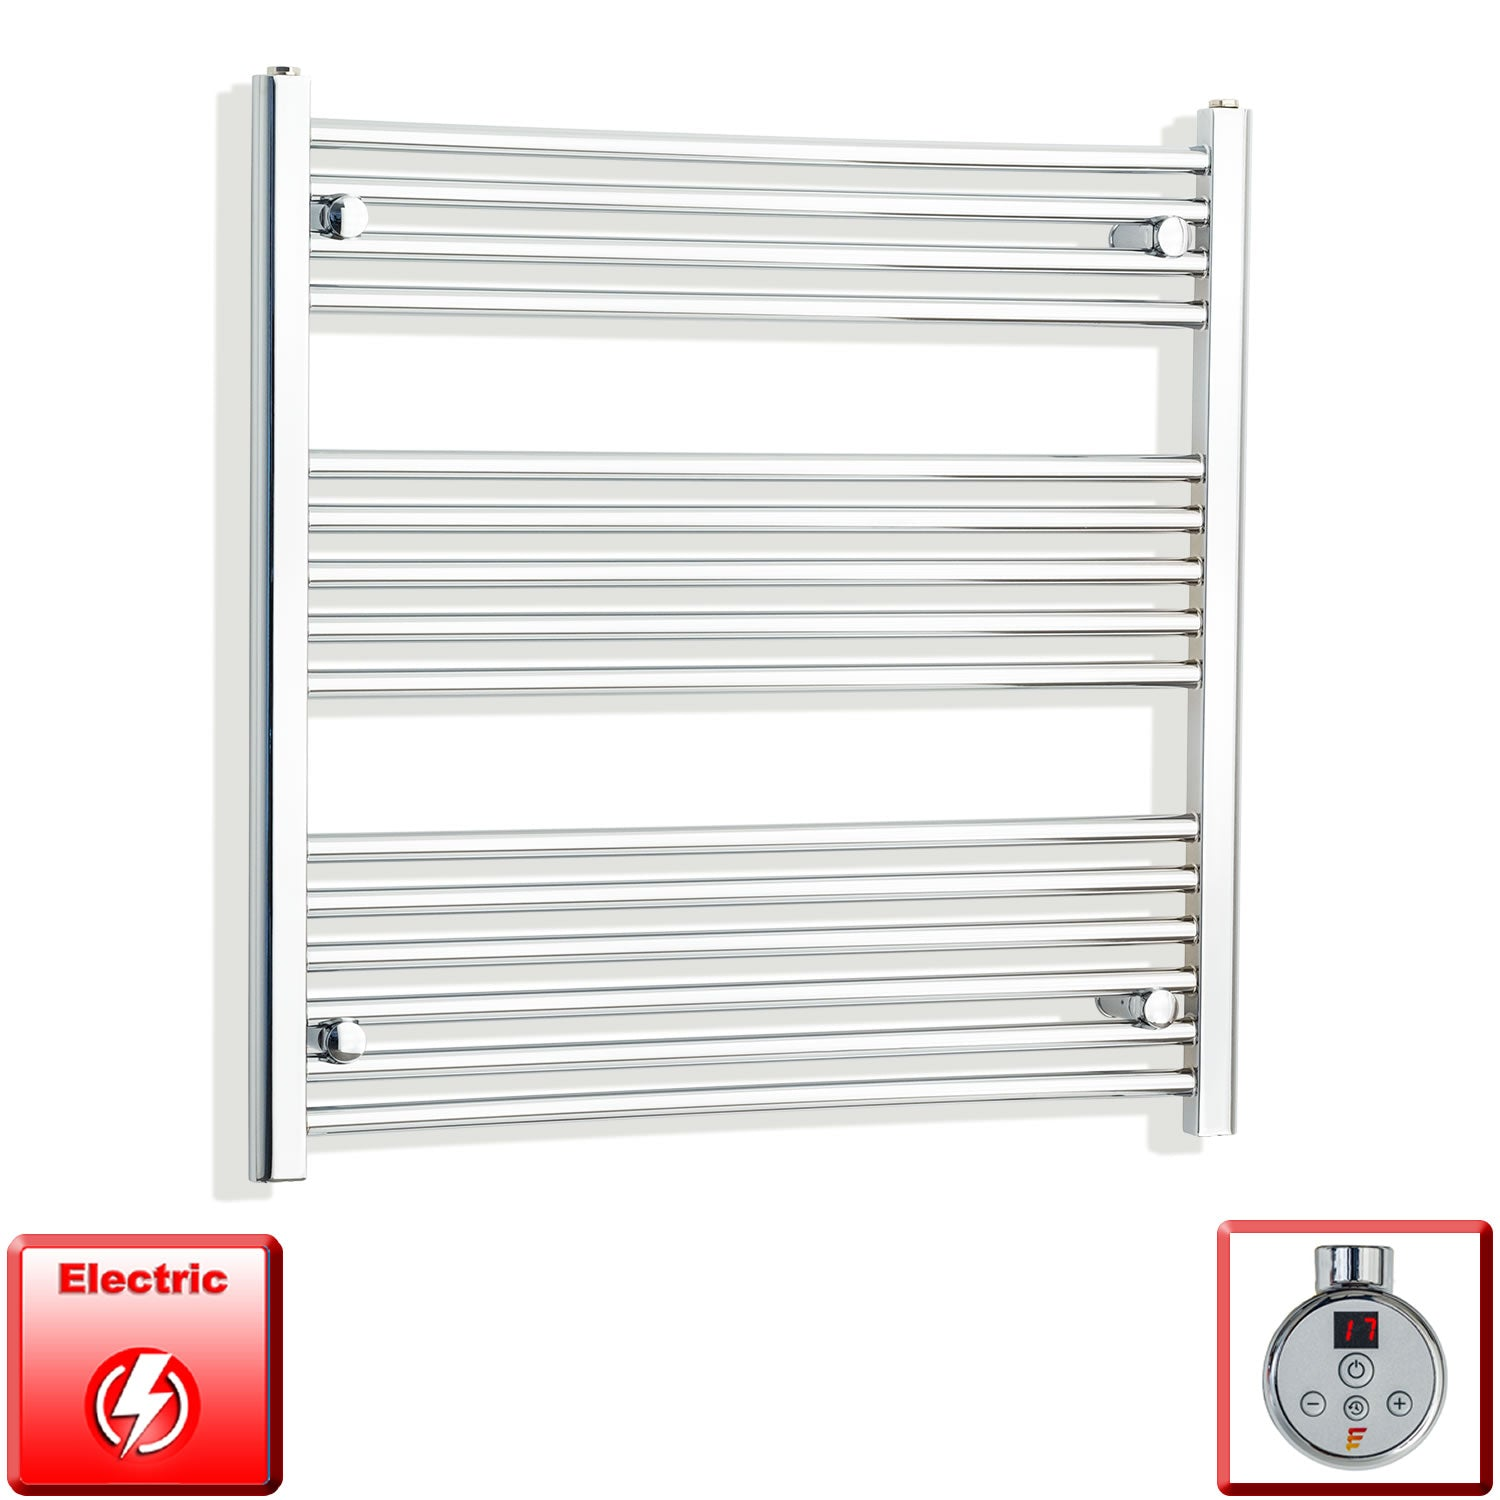 850mm Wide 800mm High Pre-Filled Chrome Electric Towel Rail Radiator With Thermostatic DIGI Element